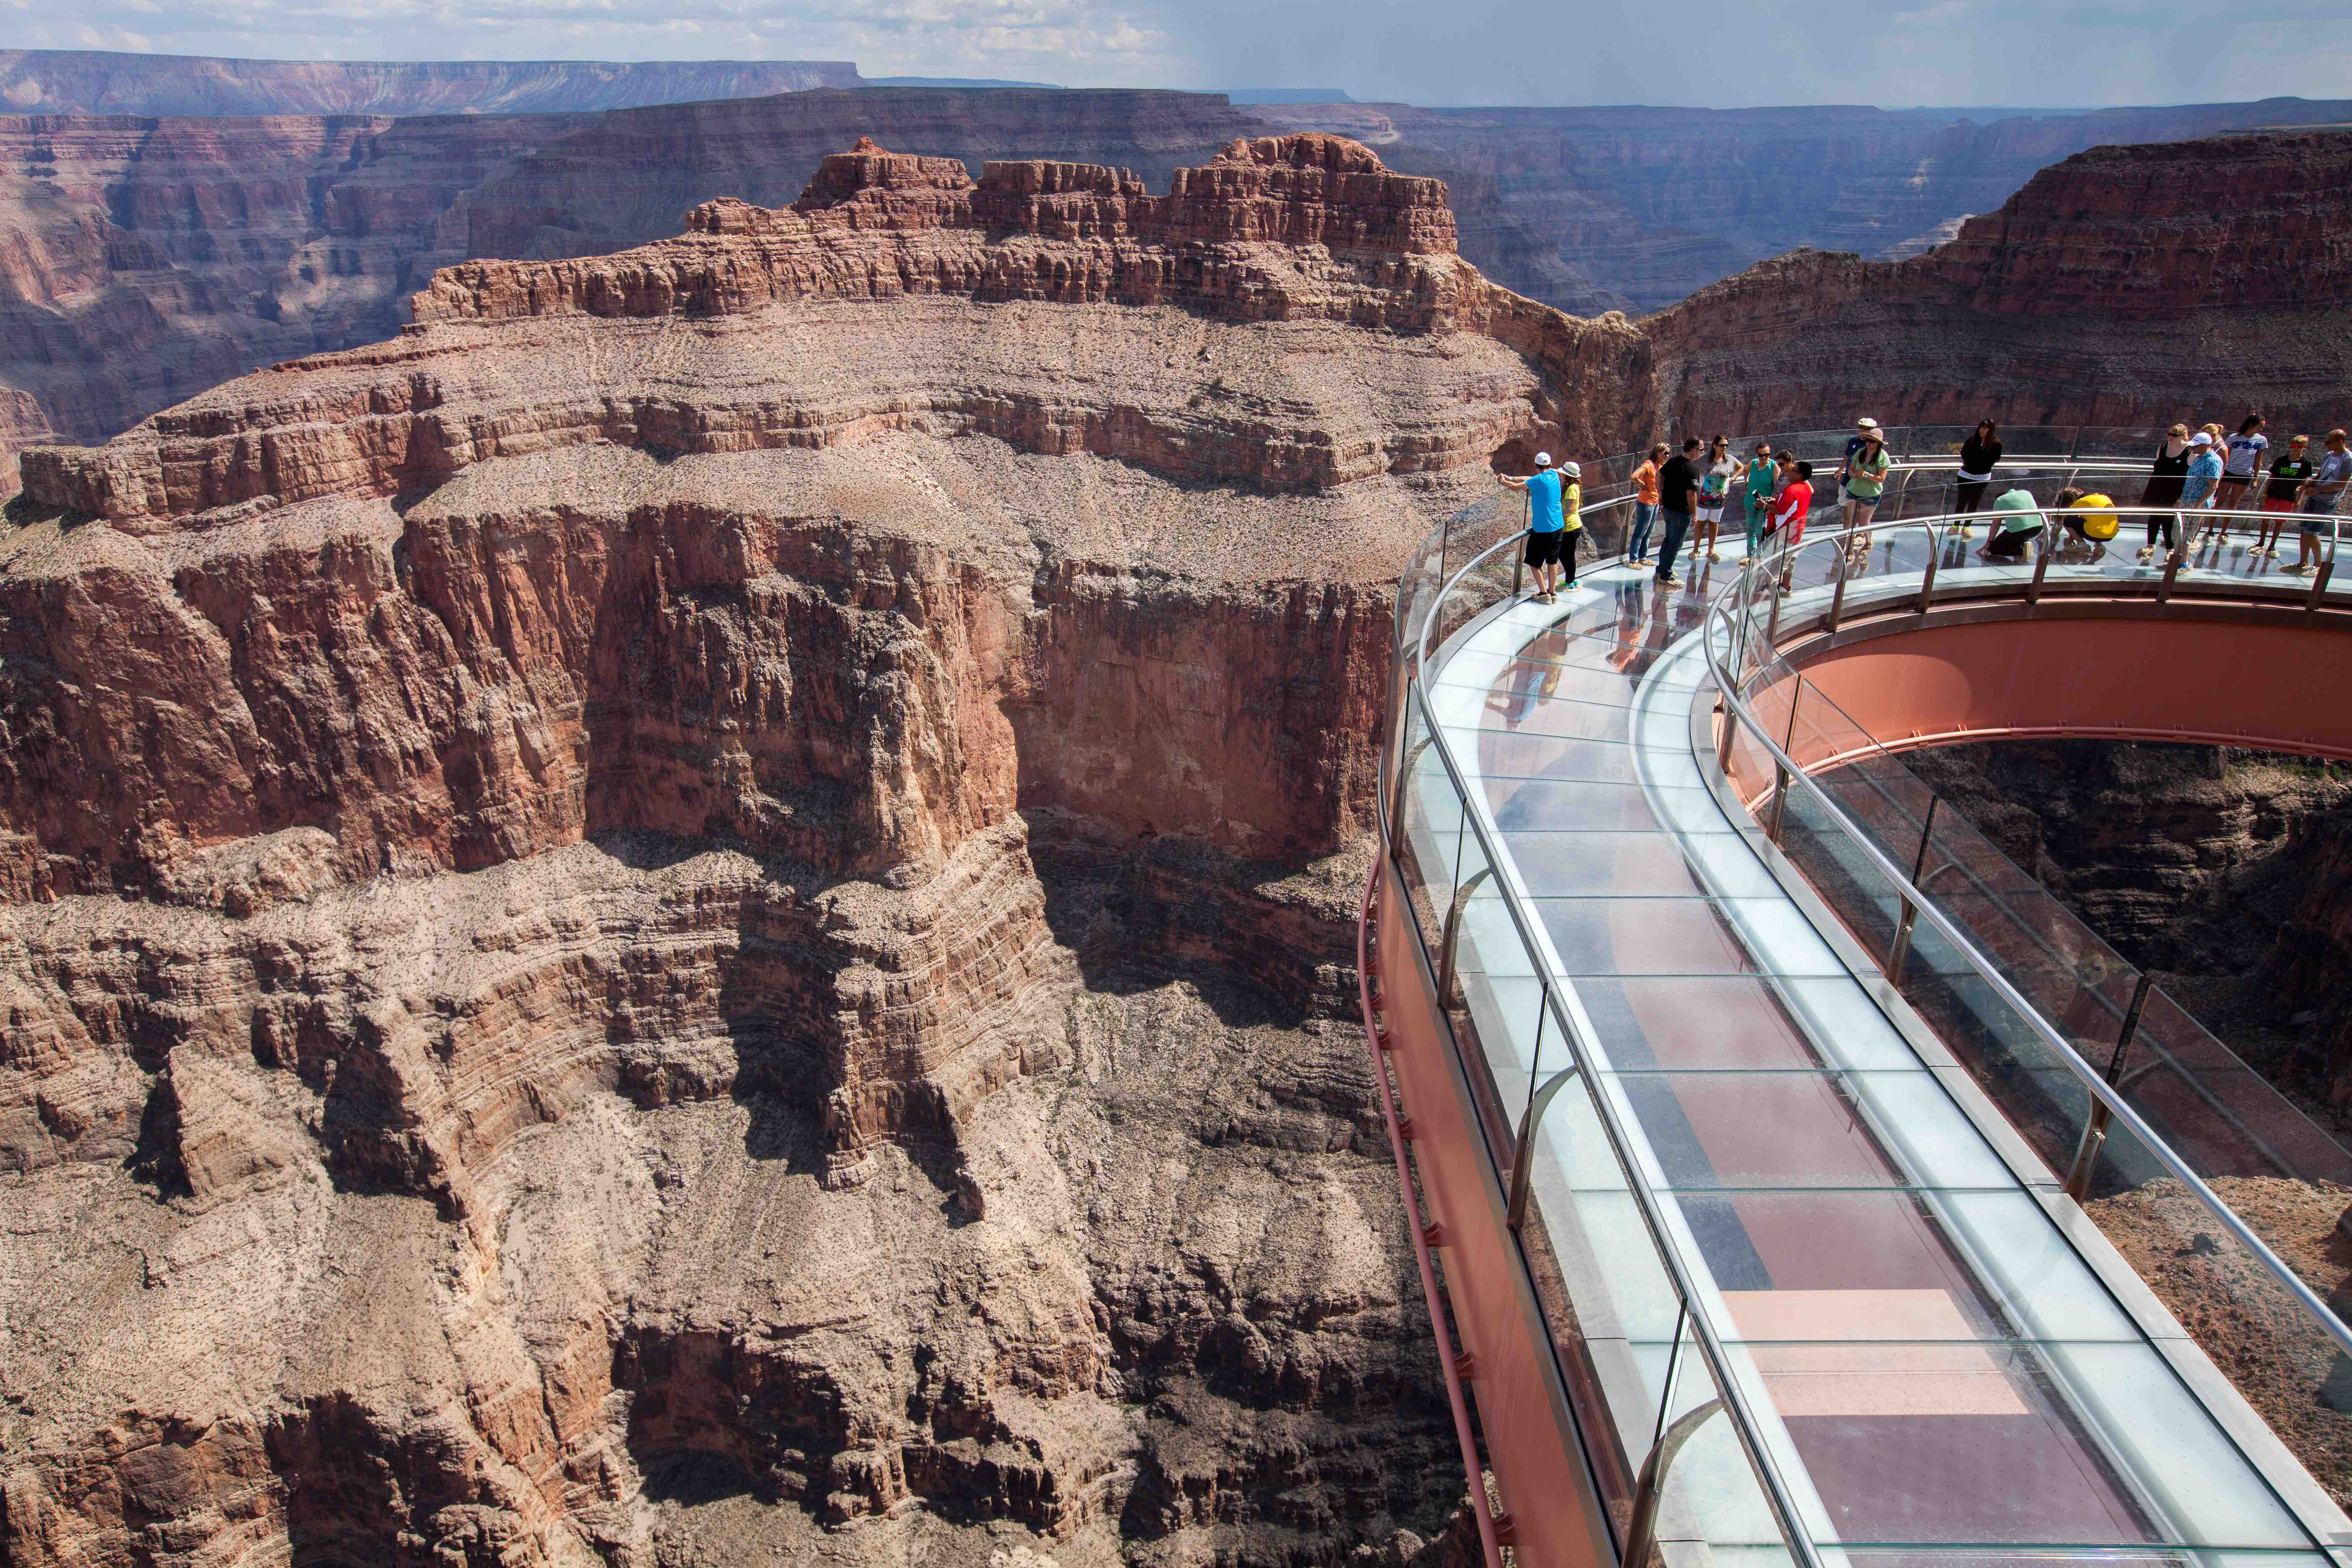 grand canyon helicopter tours with Grand Canyon Skywalk Express Helicopter Tour on Grand Canyon West further Lv Strip also Grand Canyon Skywalk Express Helicopter Tour furthermore 5starhelicoptertours also Watch.